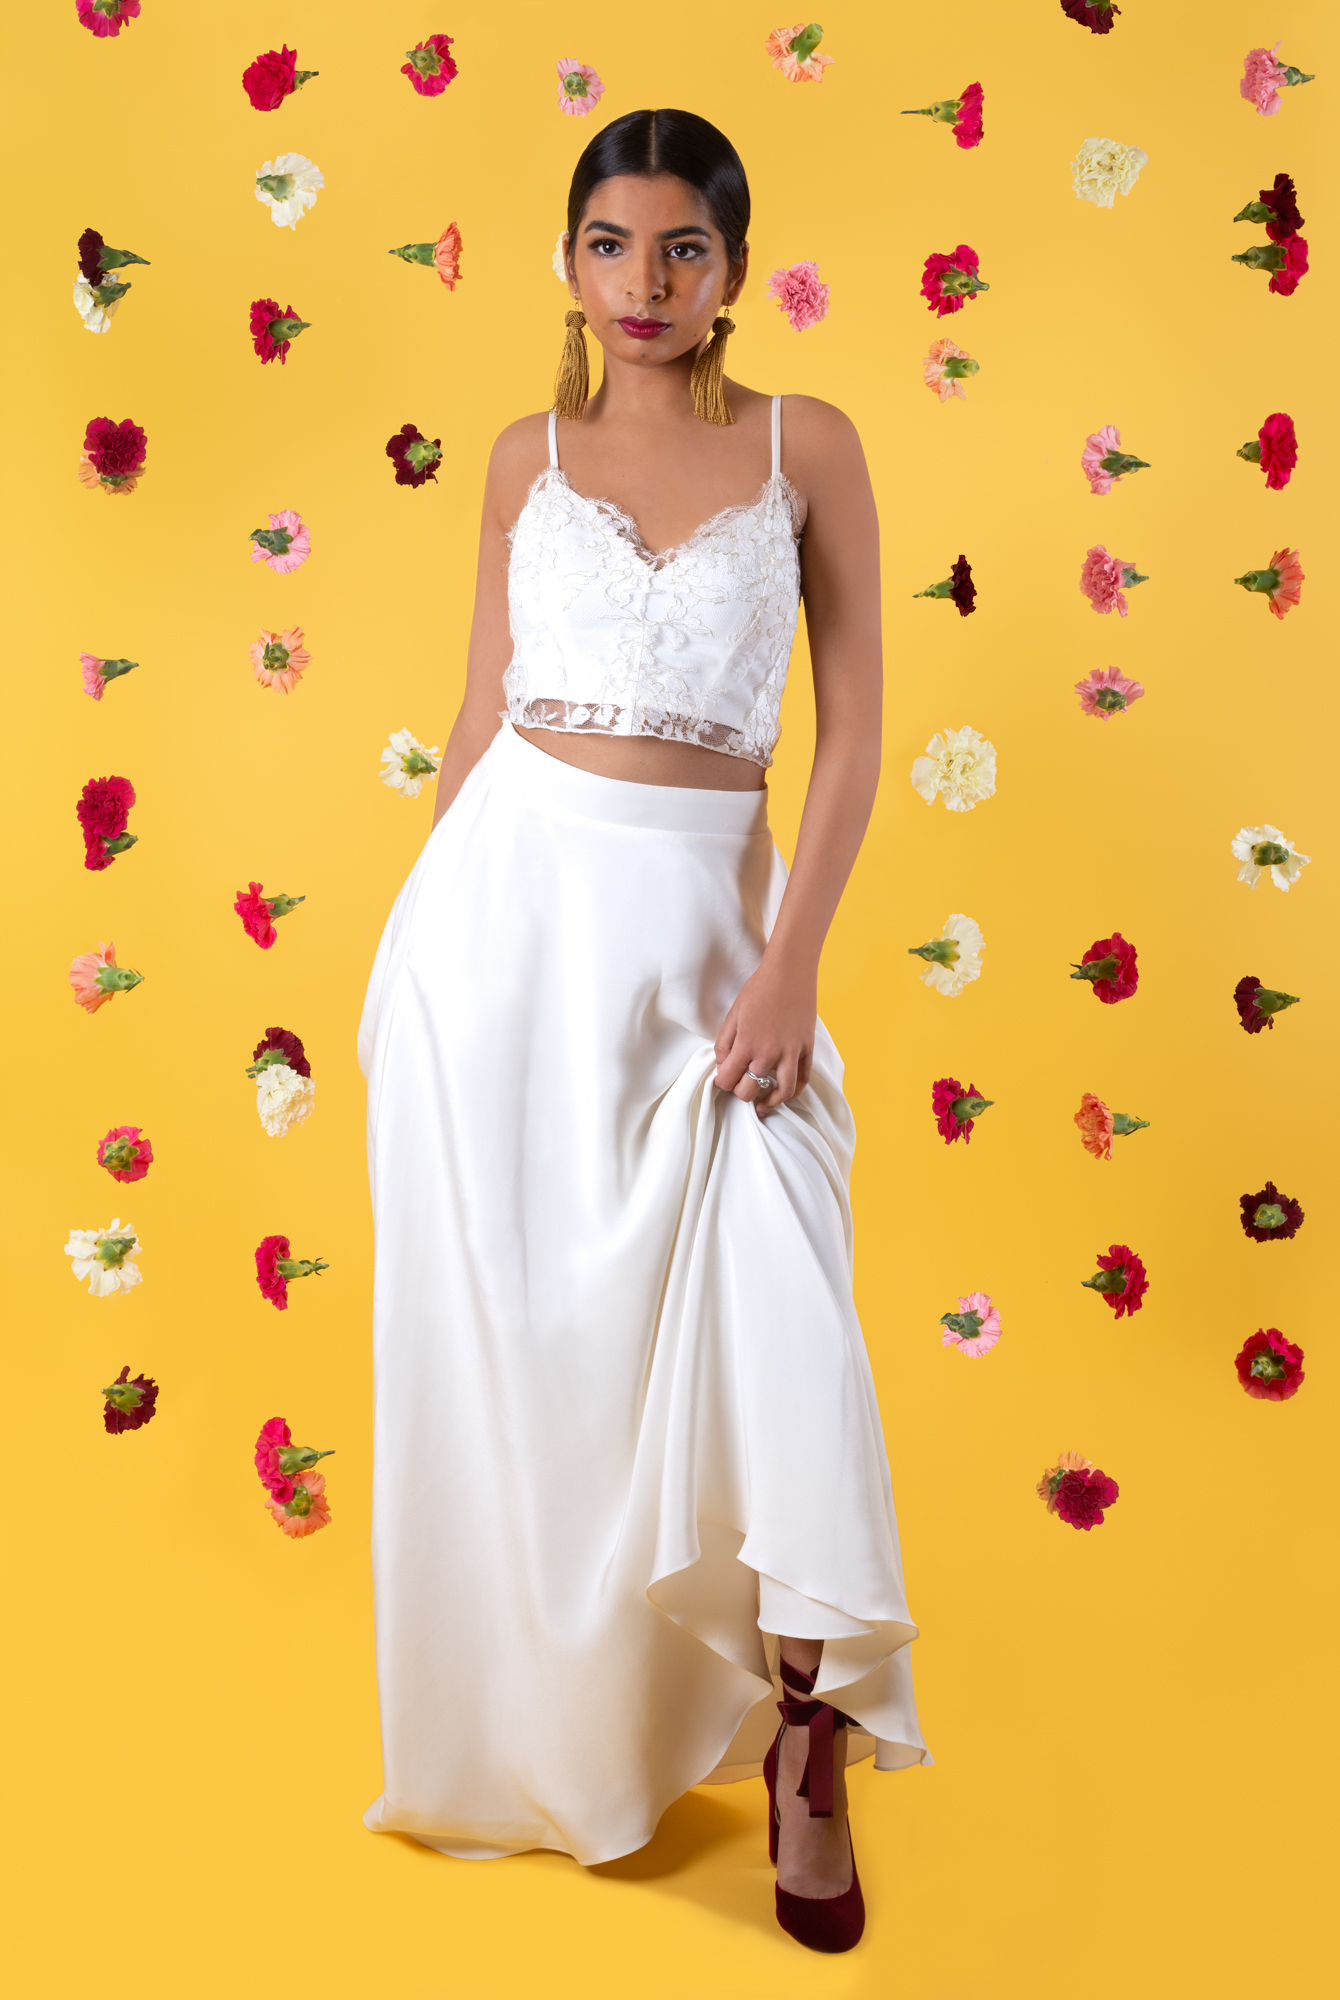 Modern Indian Inspired, untraditional, wedding styled shoot with house of ollichon bridal separates and Harriet Wilde bridal shoes